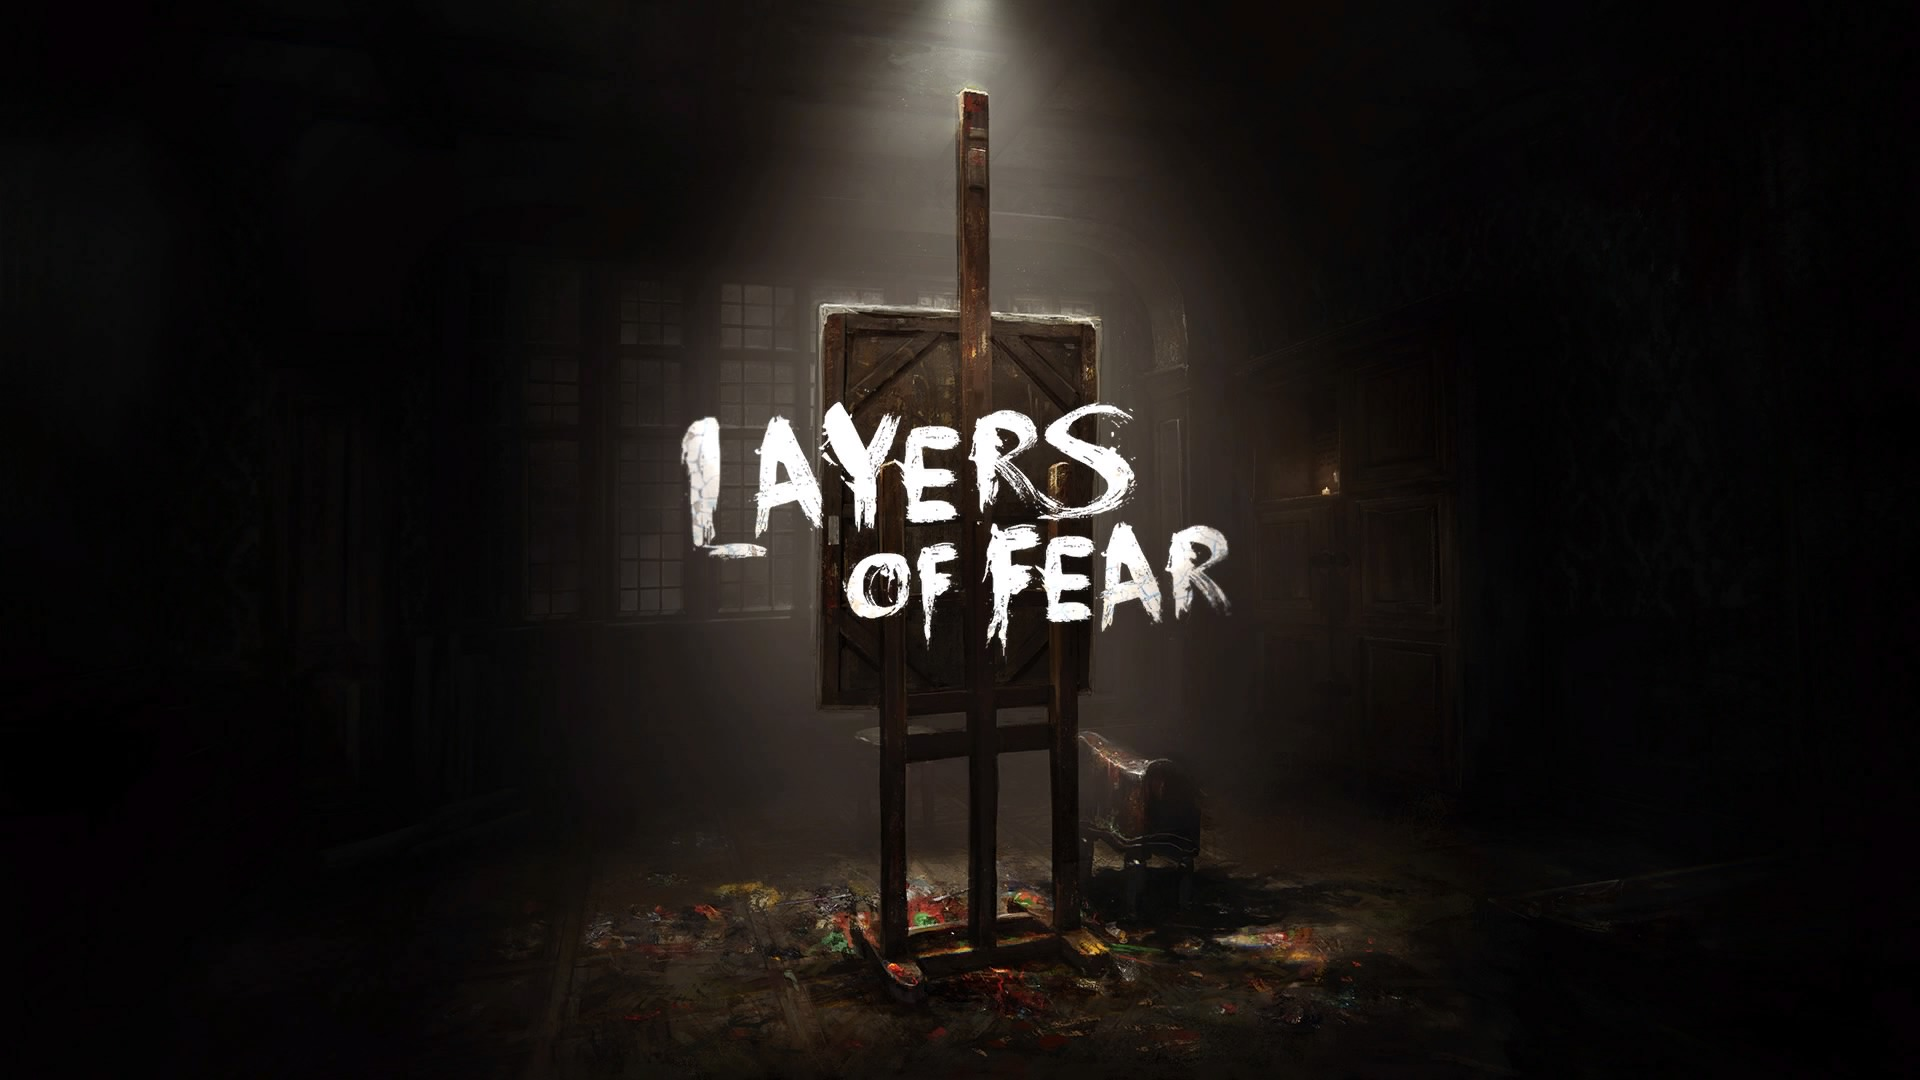 American Horror Story Wallpaper Iphone Layers Of Fear Review Finish It